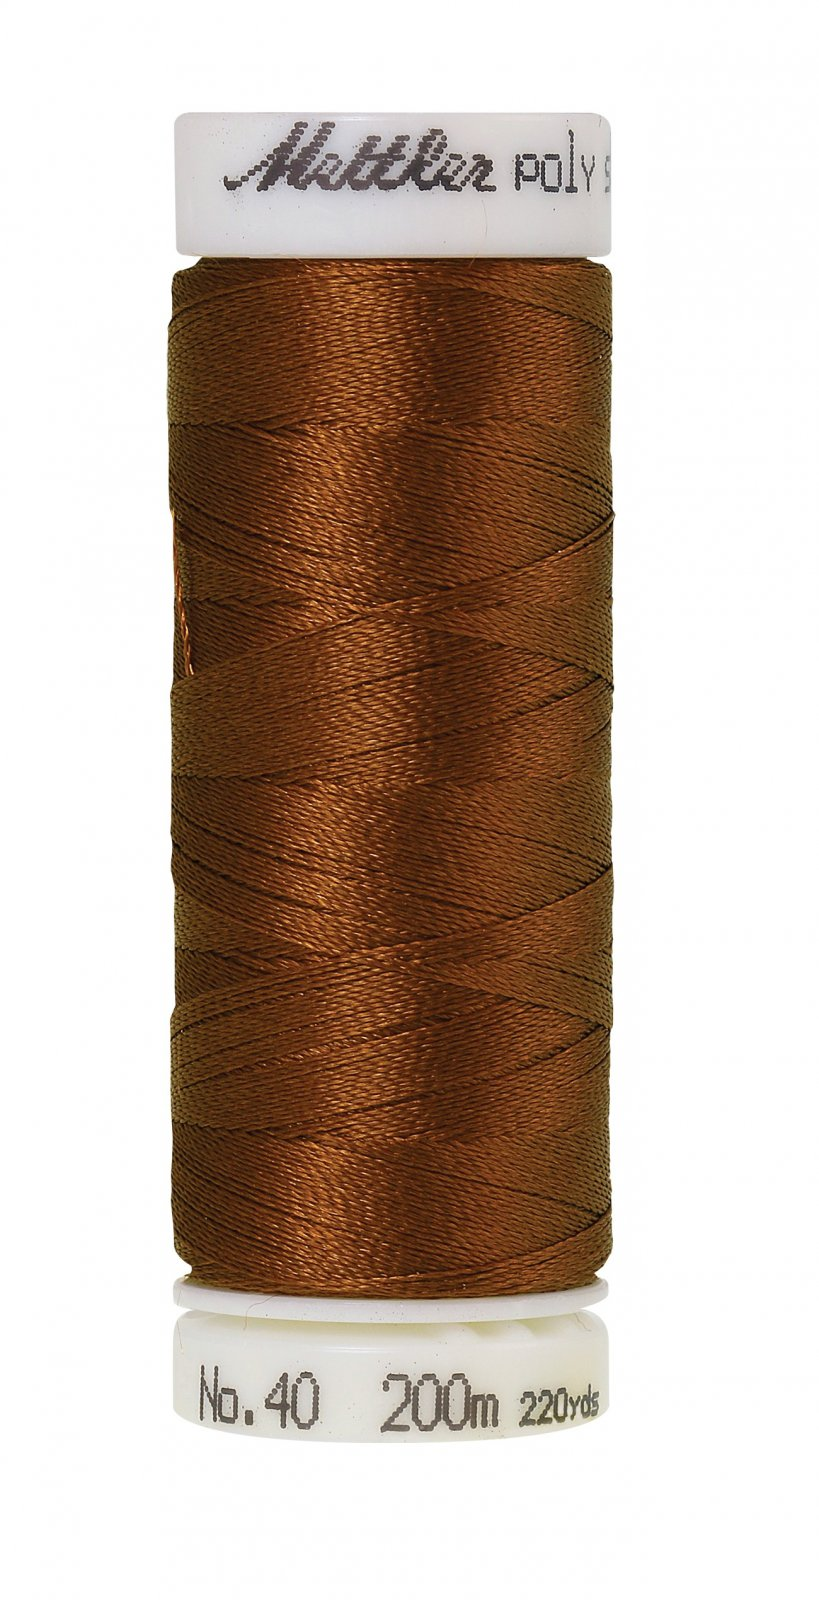 Poly Sheen Polyester Embroidery Thread 40wt 200M/220yd Light Cocoa